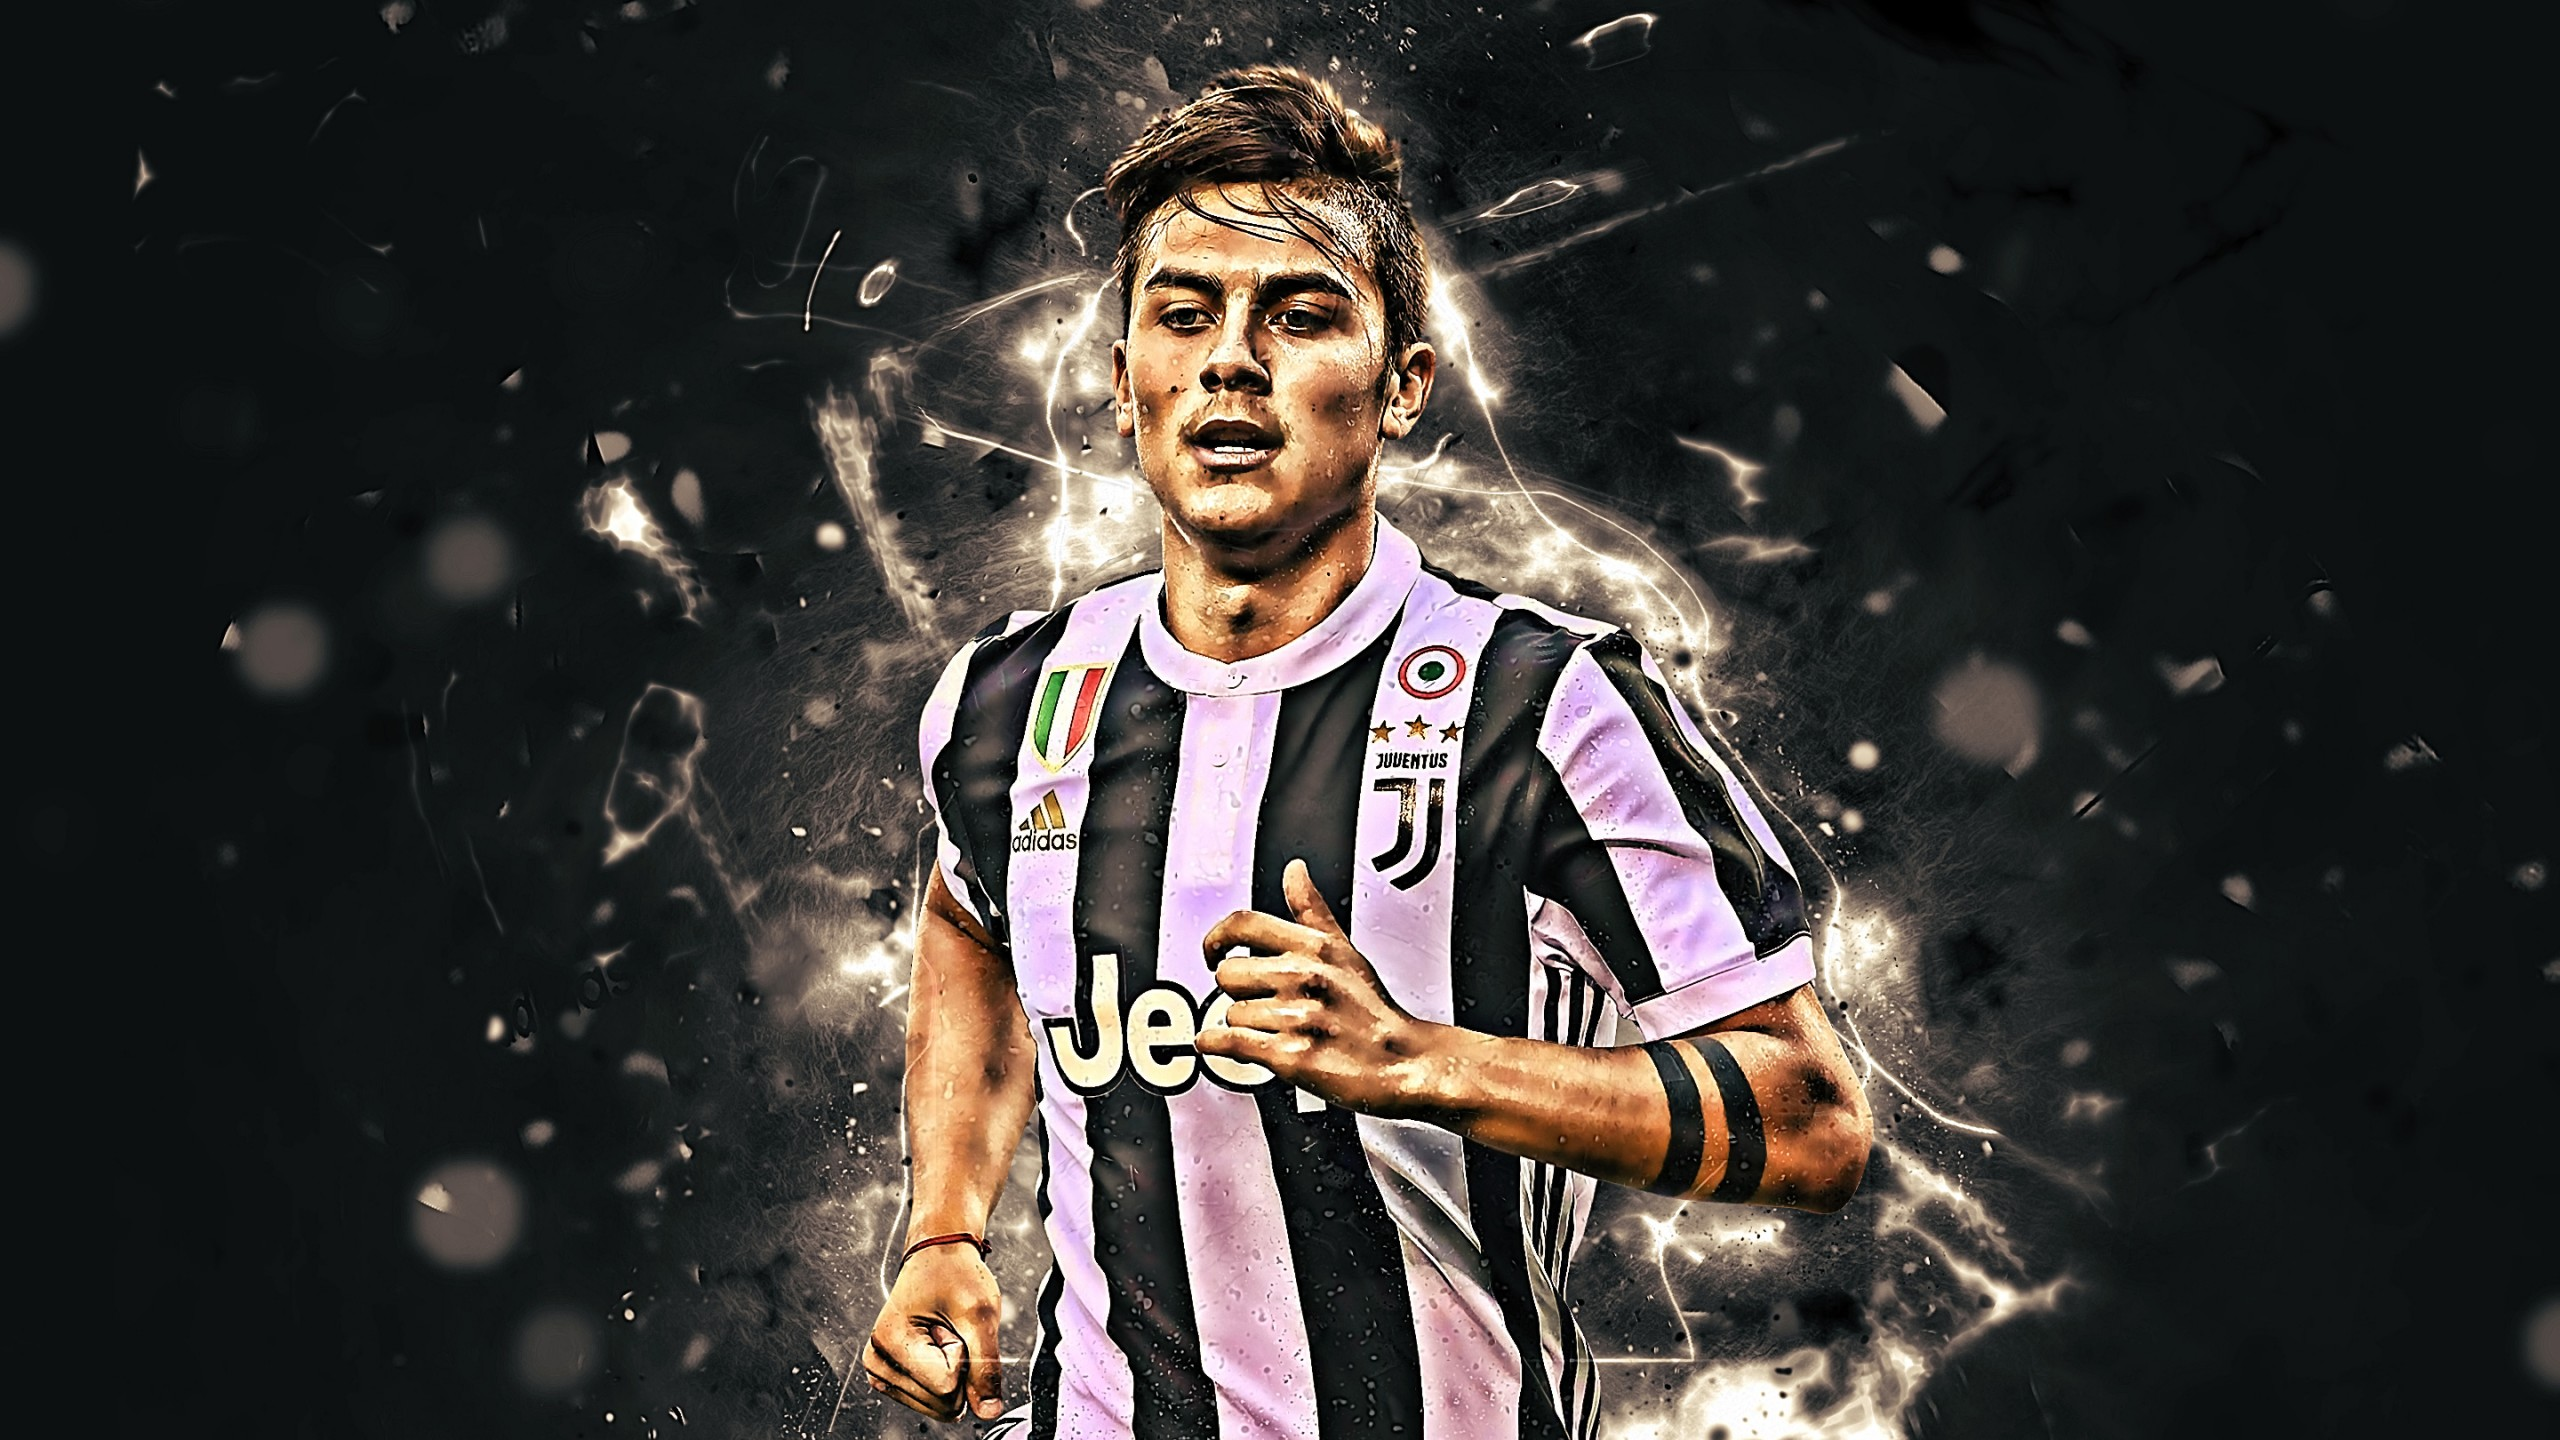 Soccer Iphone Wallpaper Hd Paulo Dybala Argentine Football Player Wallpapers Hd